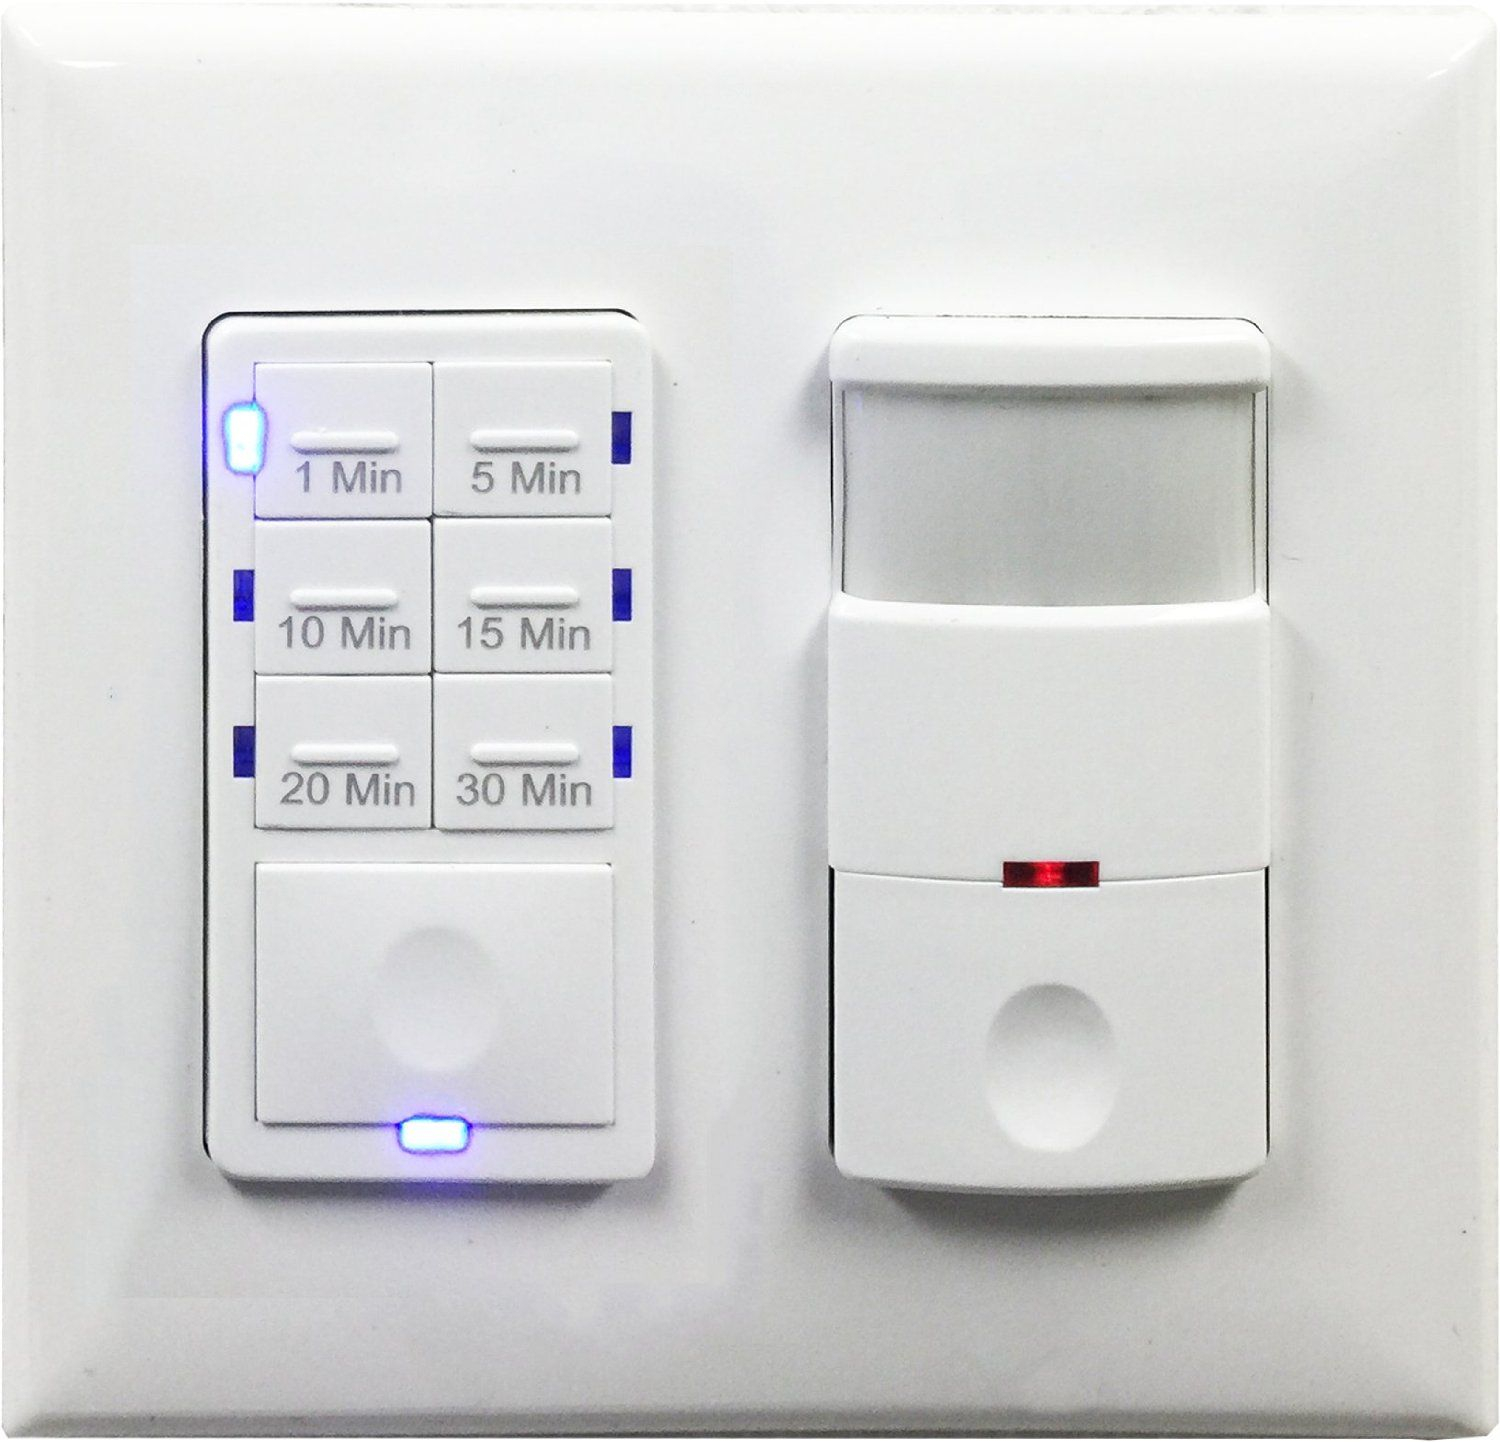 Topgreener Tdos5 Het06a Bathroom Fan Timer Switch And Light within size 1500 X 1442